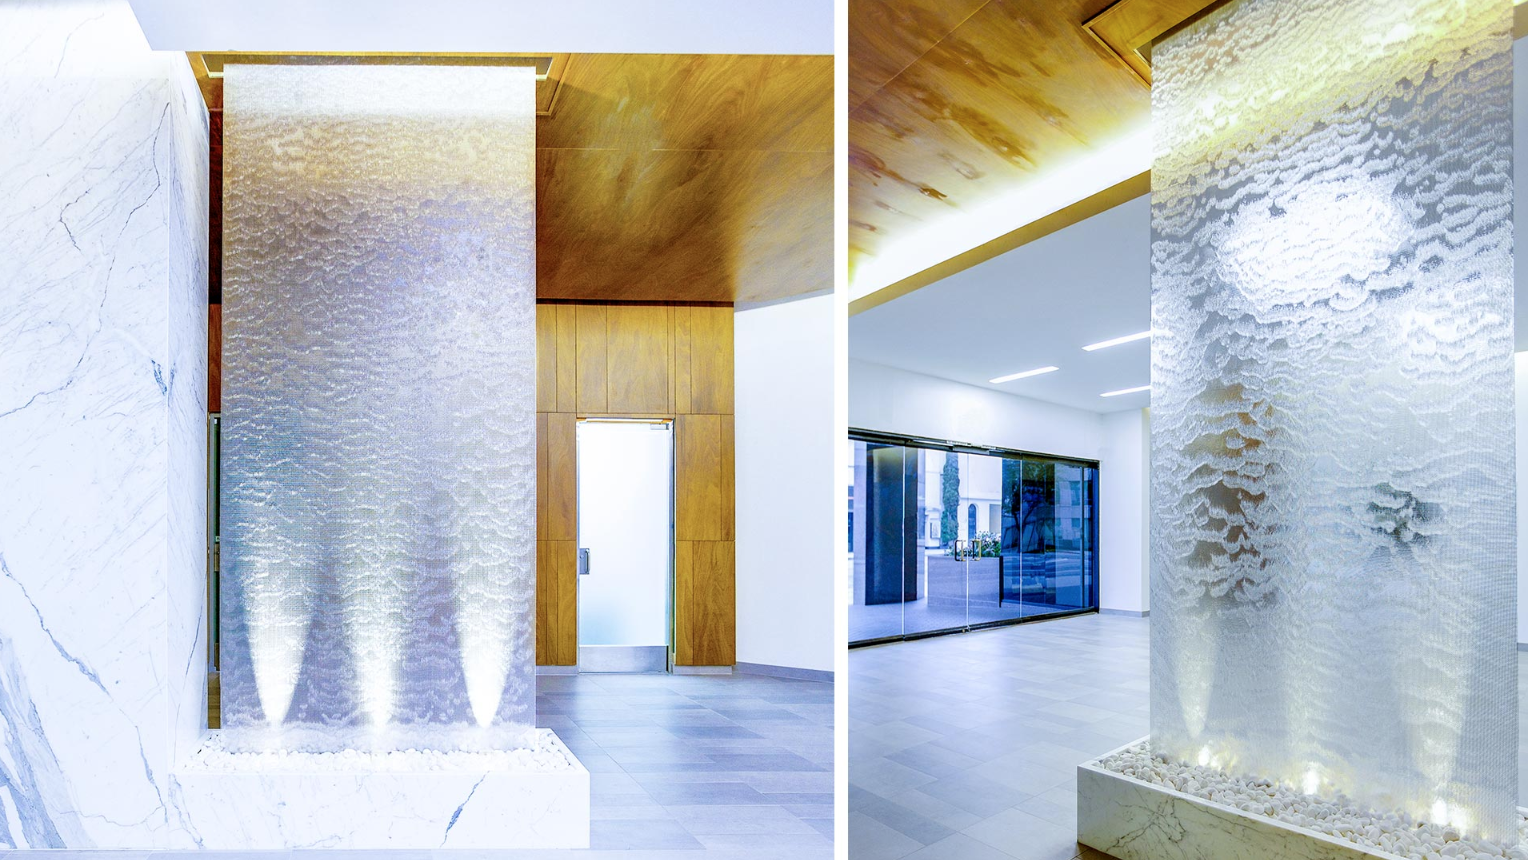 Indoor water wall acting as a room divider.